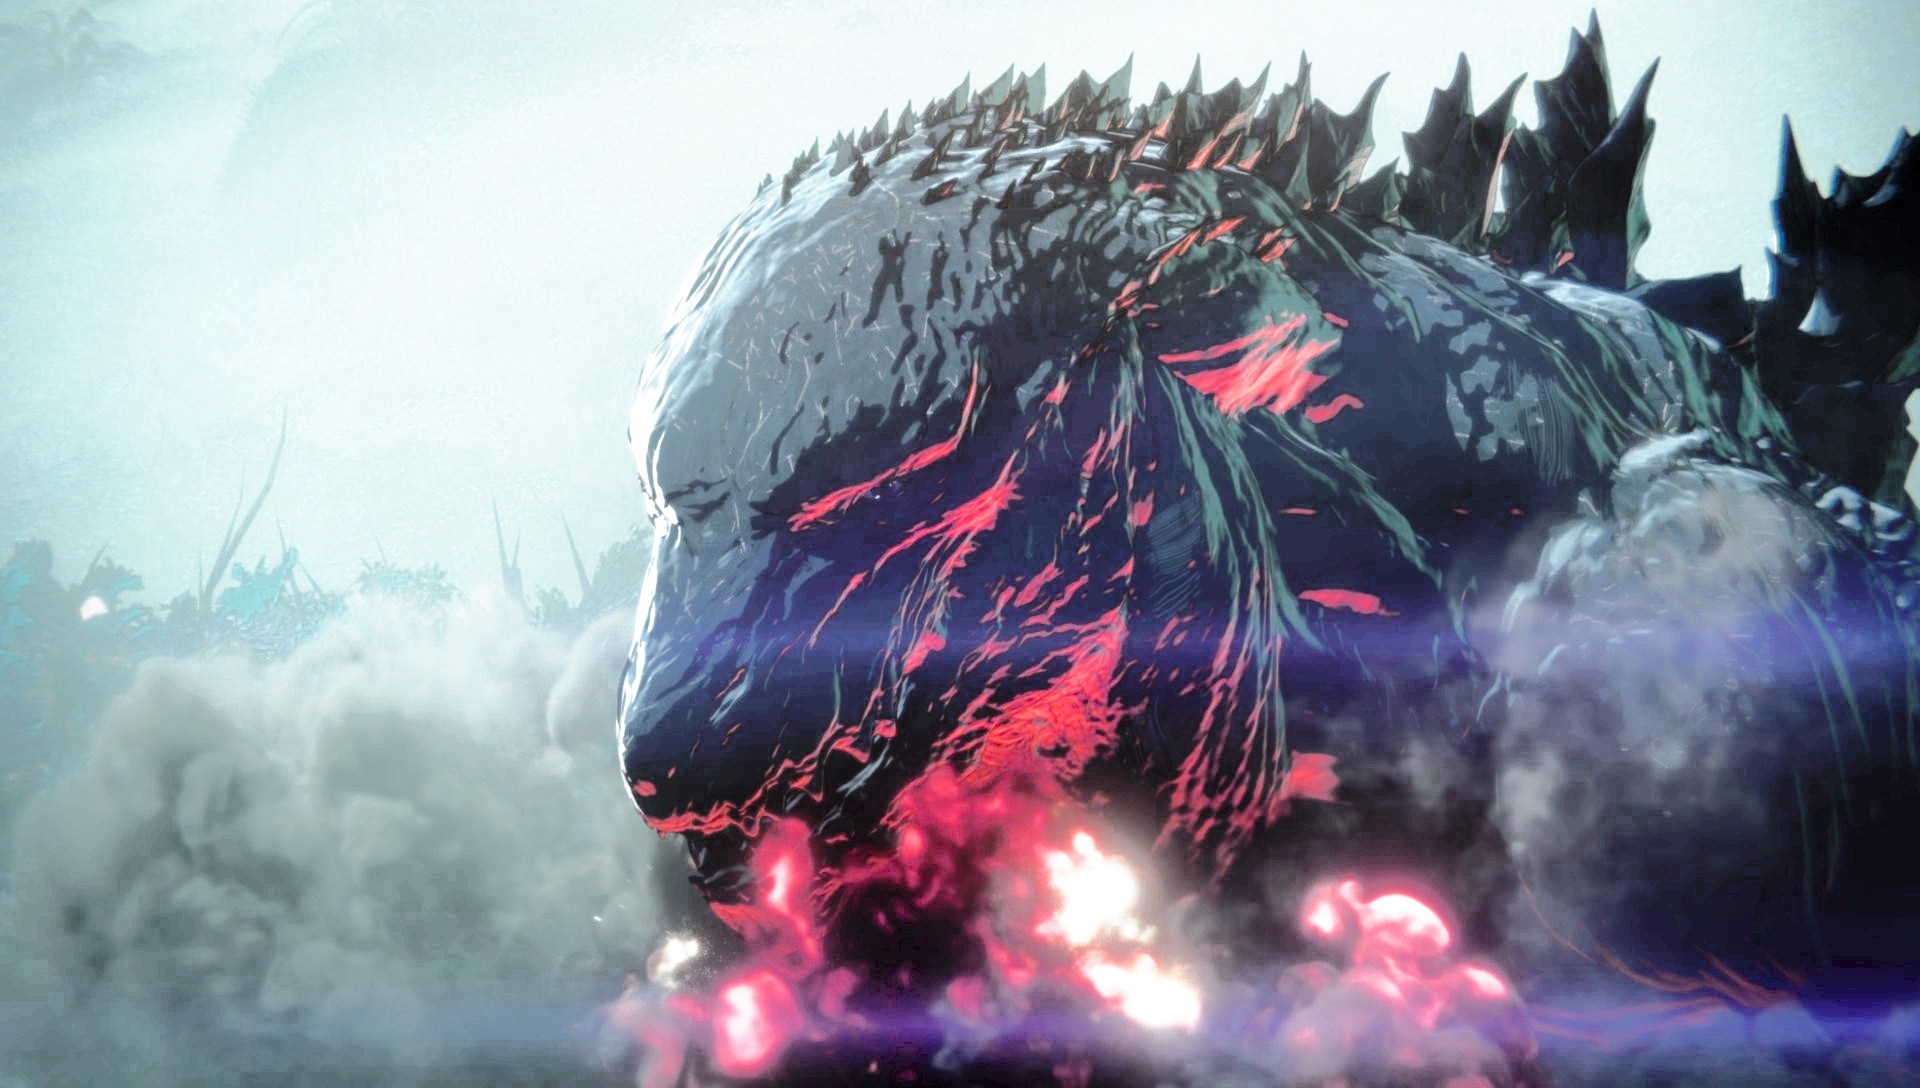 The animated Godzilla in Godzilla Planet of the Monsters (2017)